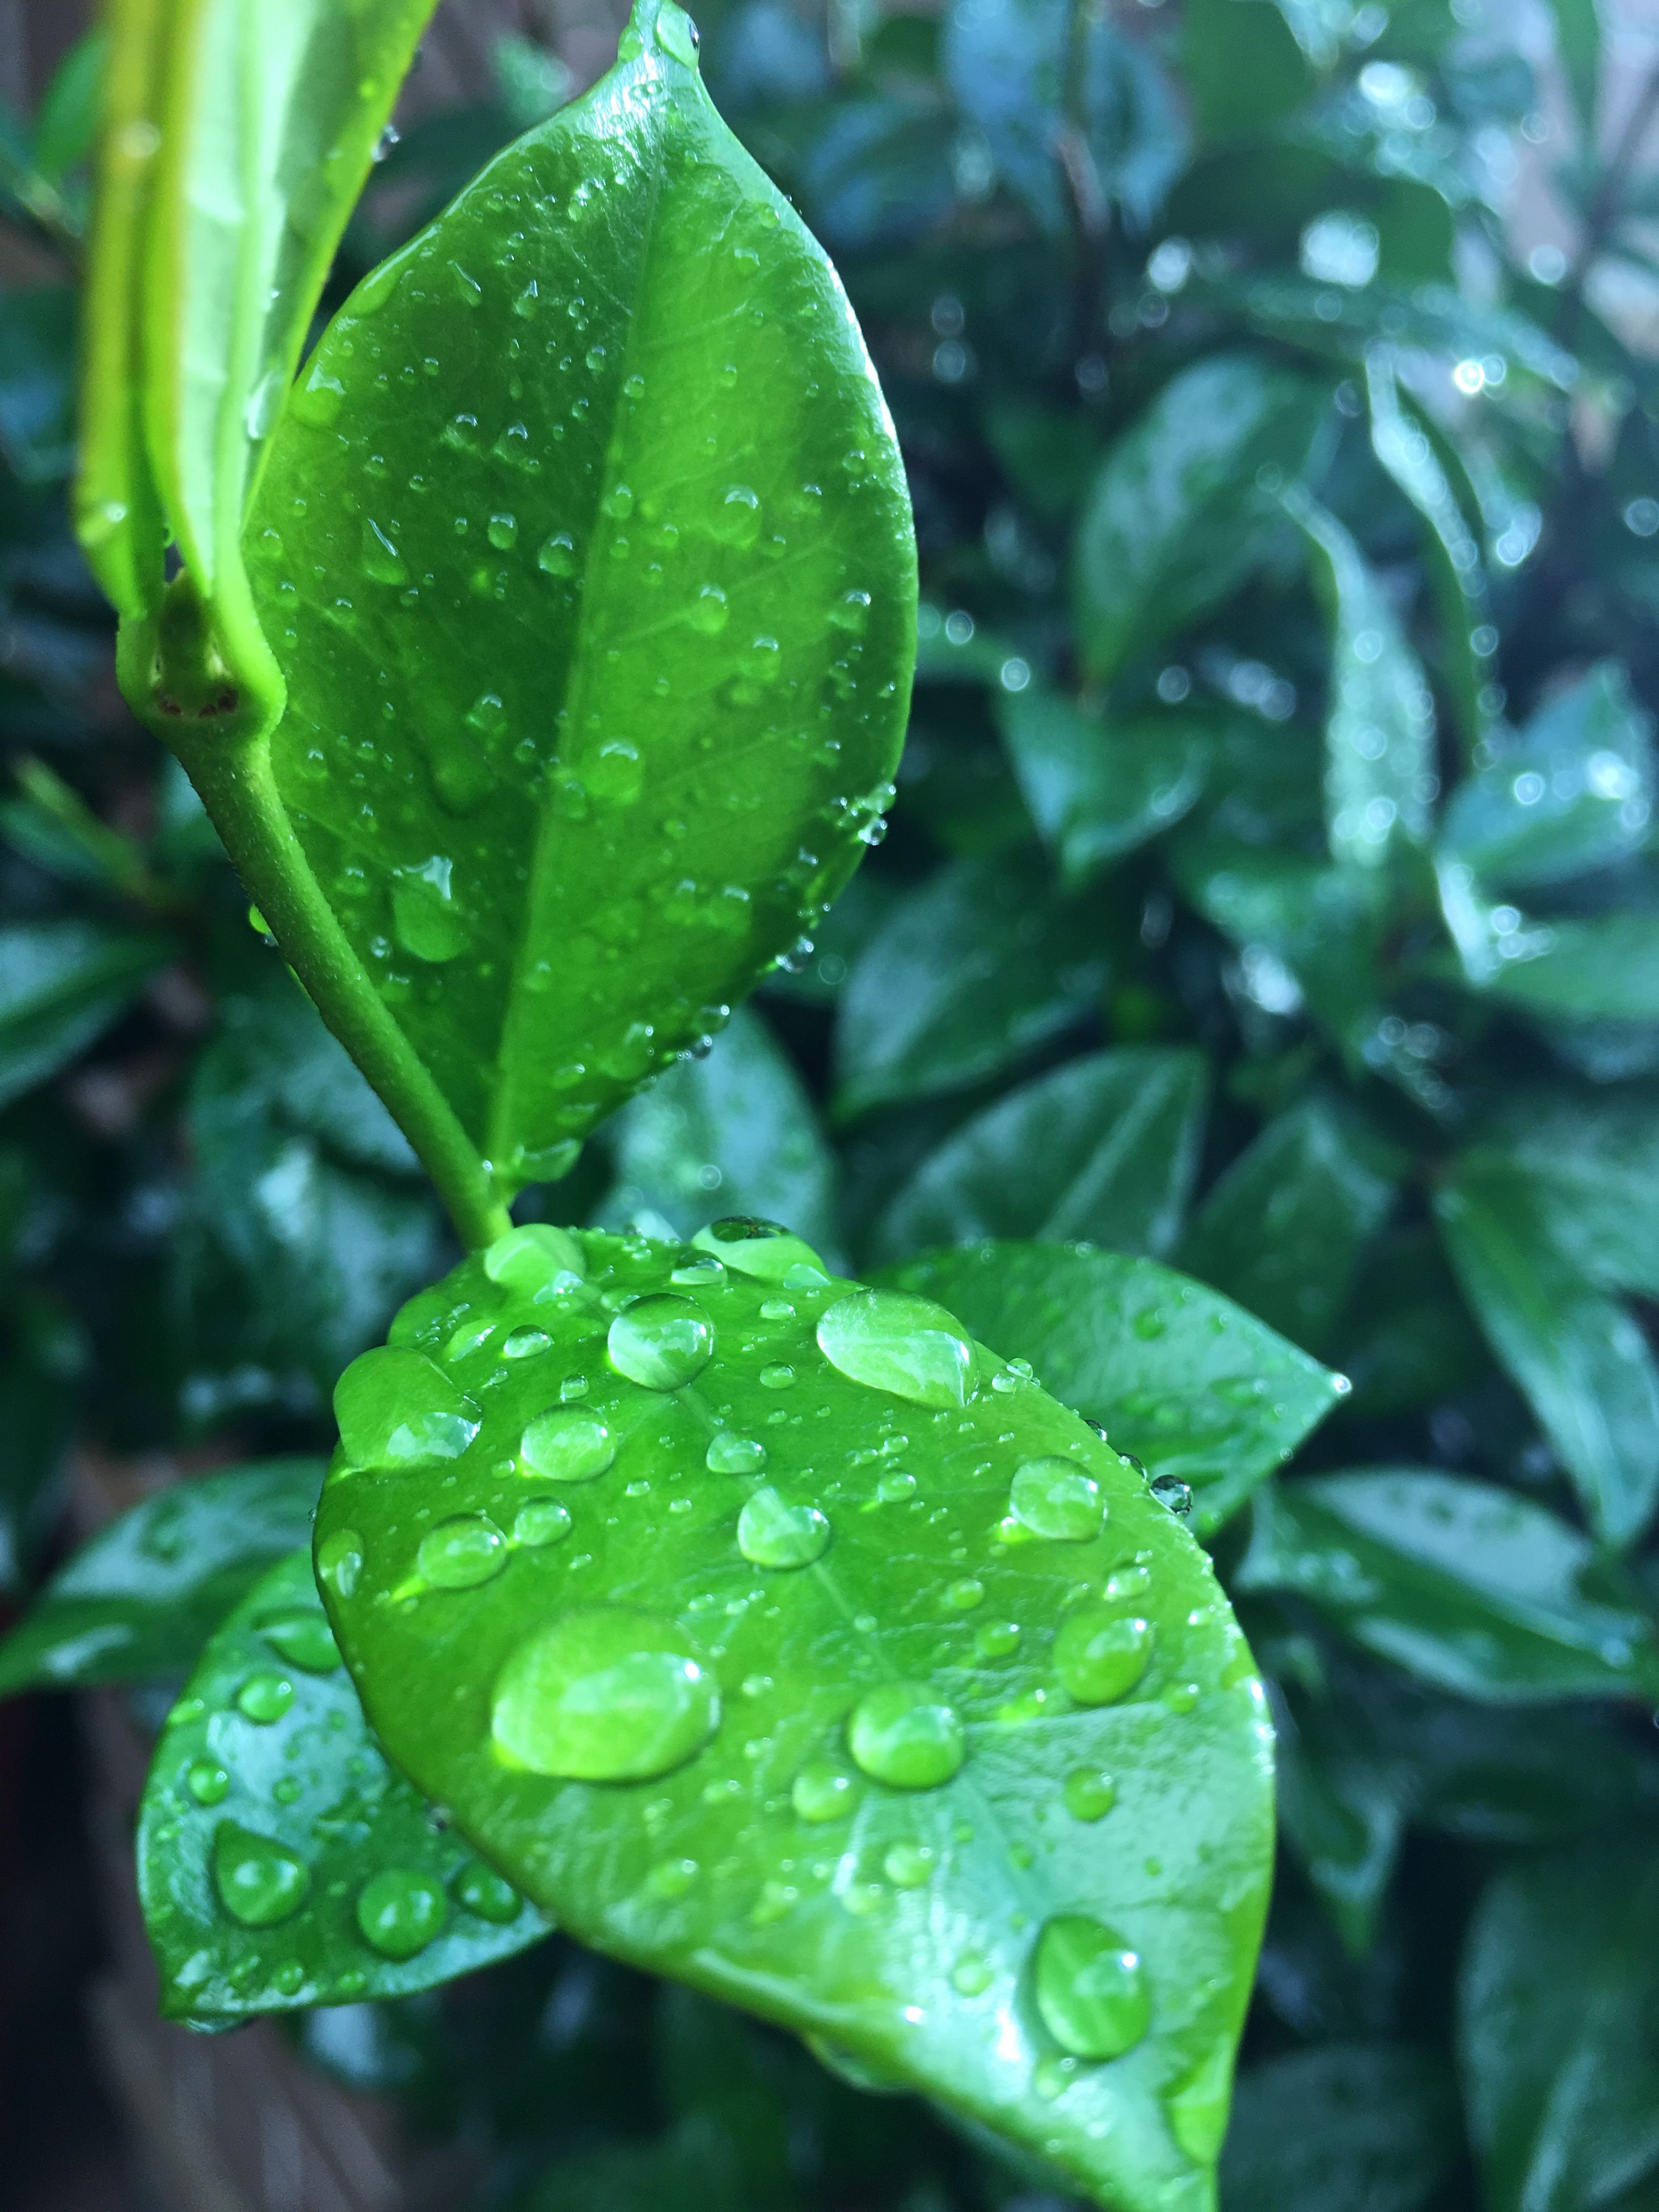 drop, nature, wet, water, green color, rain, growth, leaf, plant, dew, freshness, beauty in nature, close-up, raindrop, focus on foreground, rainy season, weather, fragility, purity, no people, outdoors, day, flower head